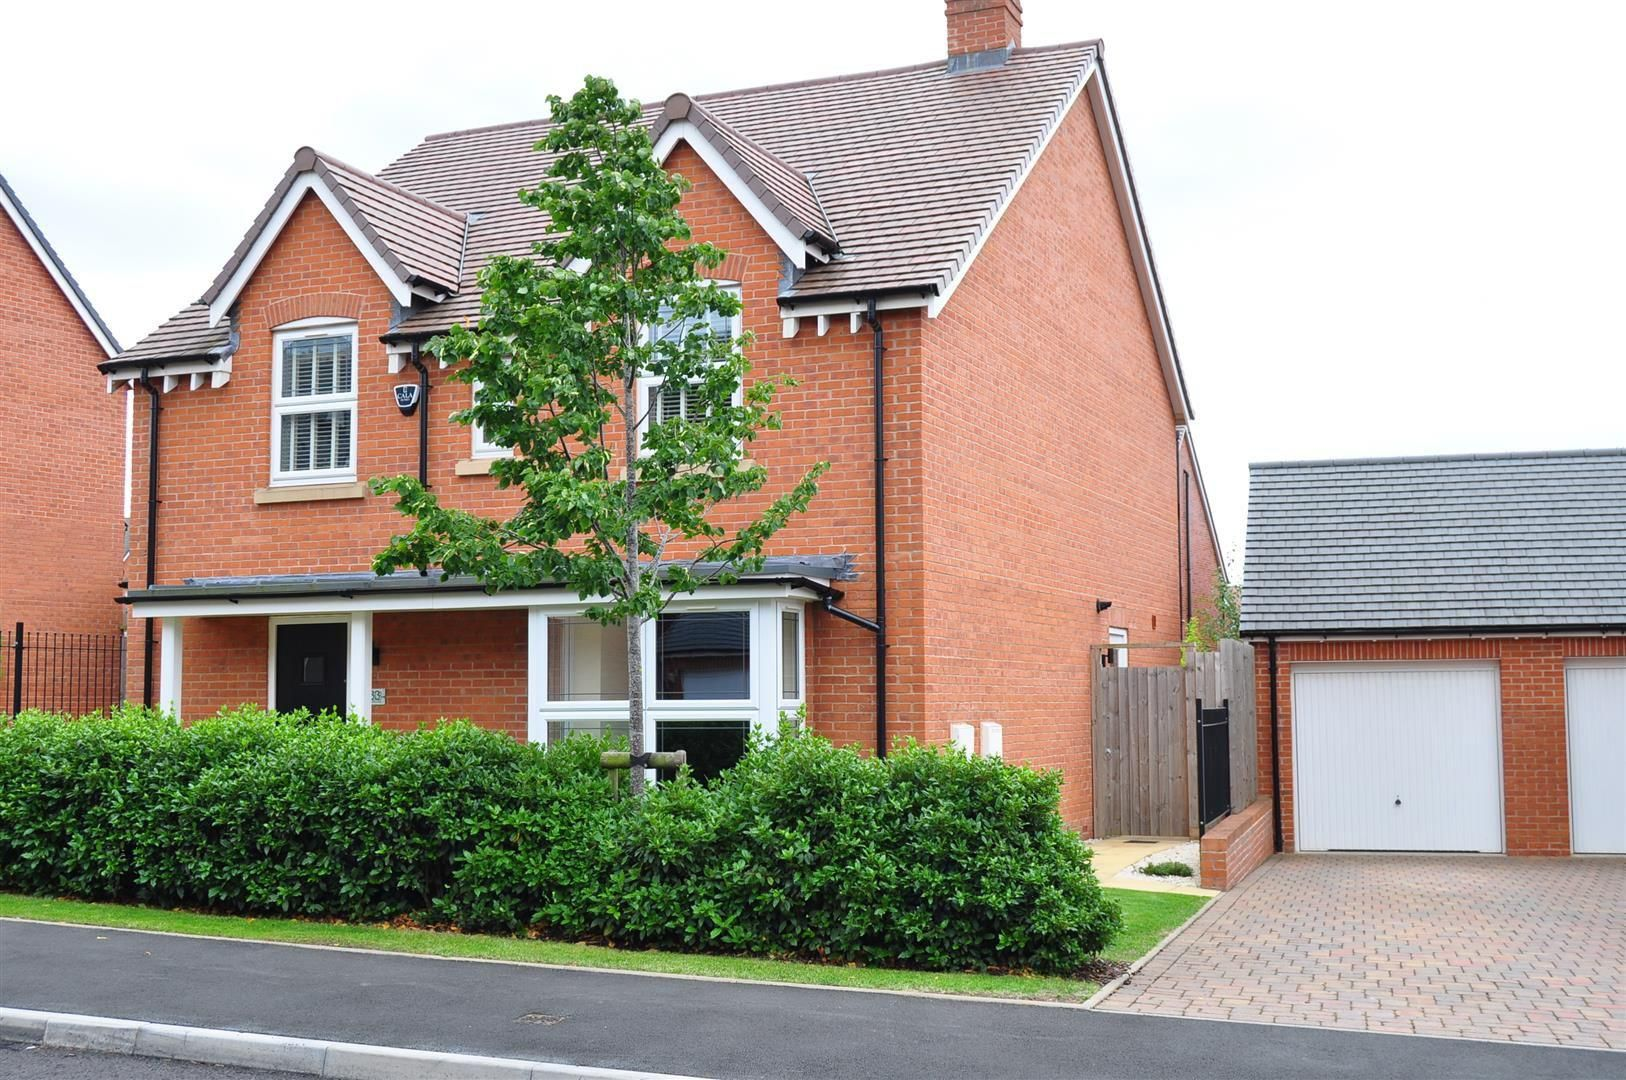 4 bed detached for sale in Hagley 24